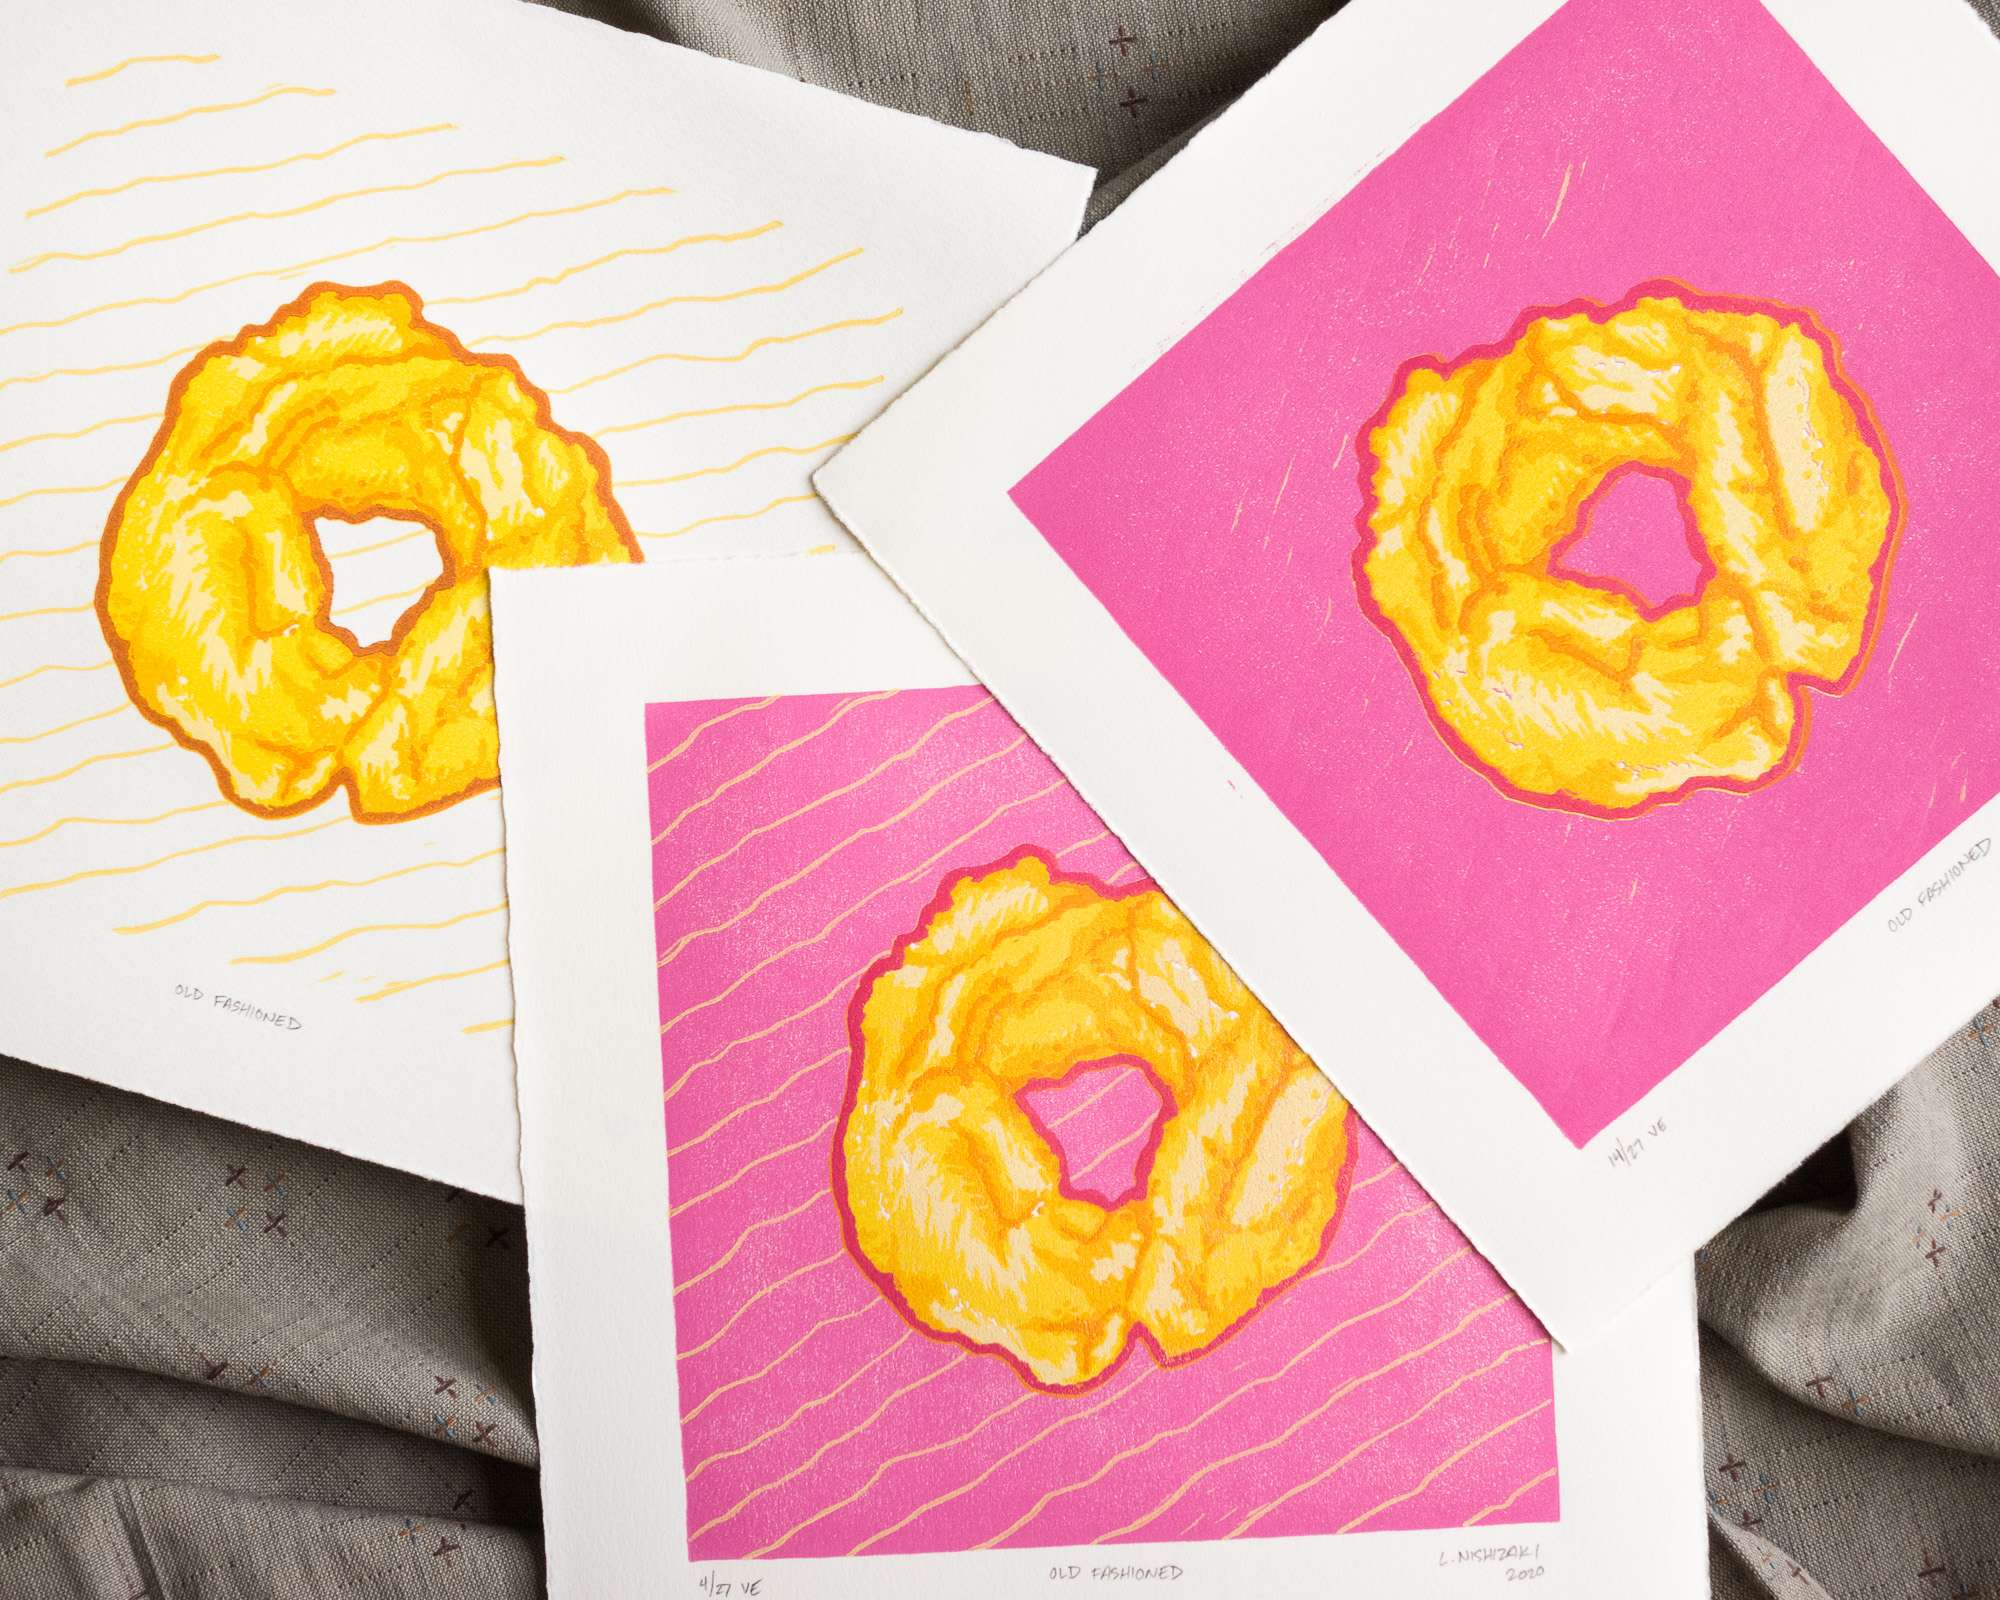 A trio of three square prints, slightly overlapping, of an old fashioned donut. The left-most print has yellow stripes in the background of a yellow and orange donut. The middle print has the same pattern but with a bright pink background. The right-most print has the same pattern with a bright pink background, minus the yellow stripes.